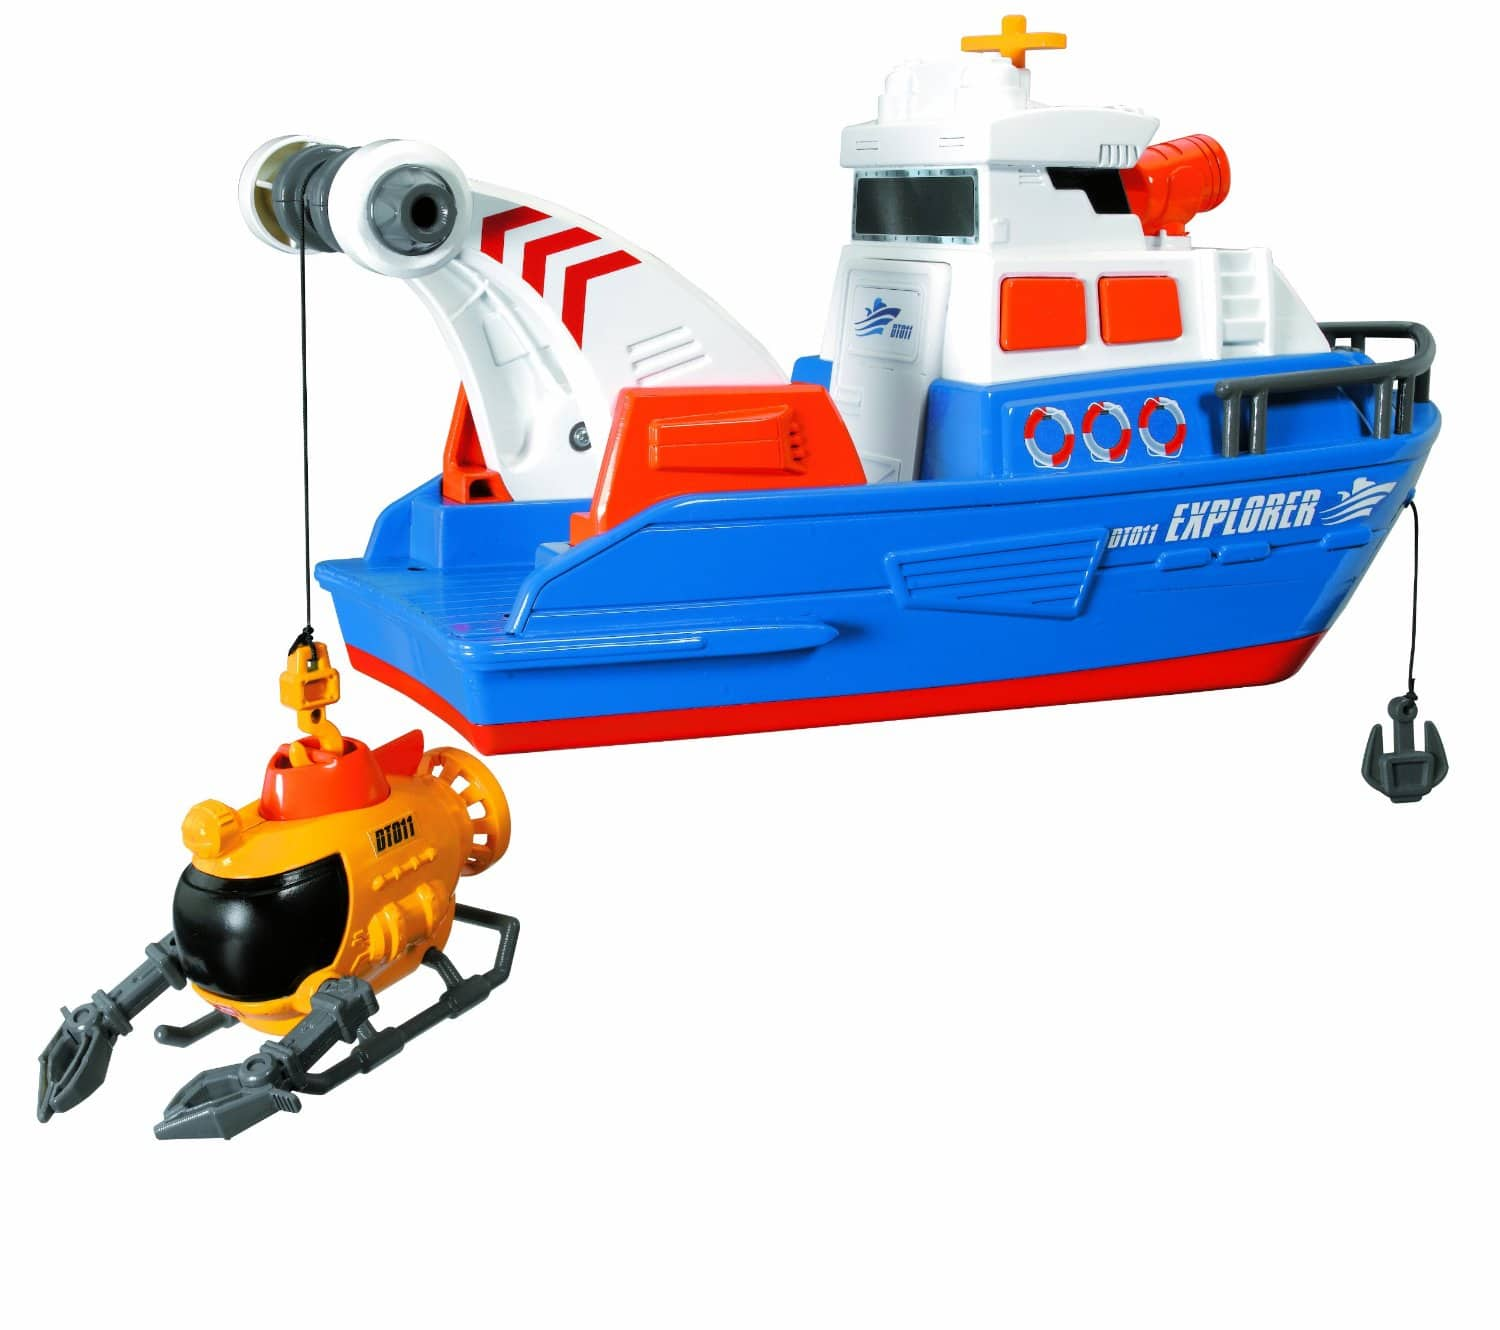 Top 10 best boat toys for kids in 2016 reviews